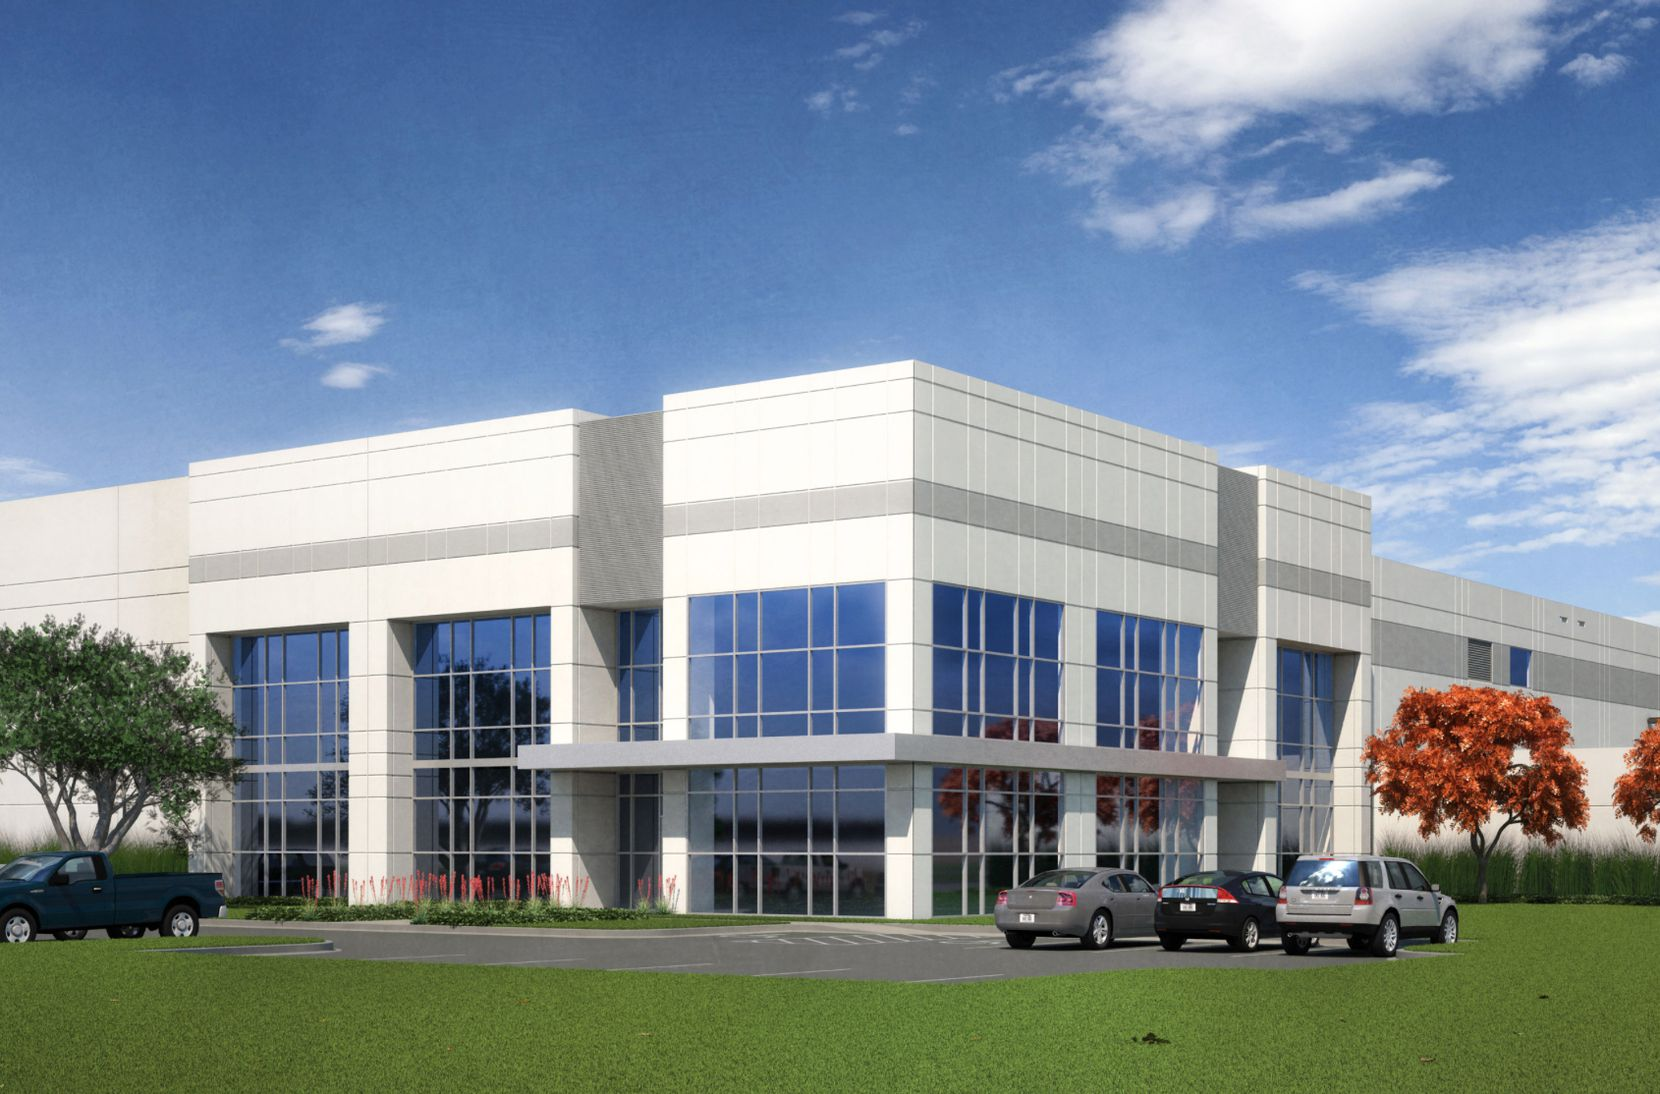 Smart Warehousing will locate in HIllwood Properties' Alliance Center North 15 on Eagle Parkway.